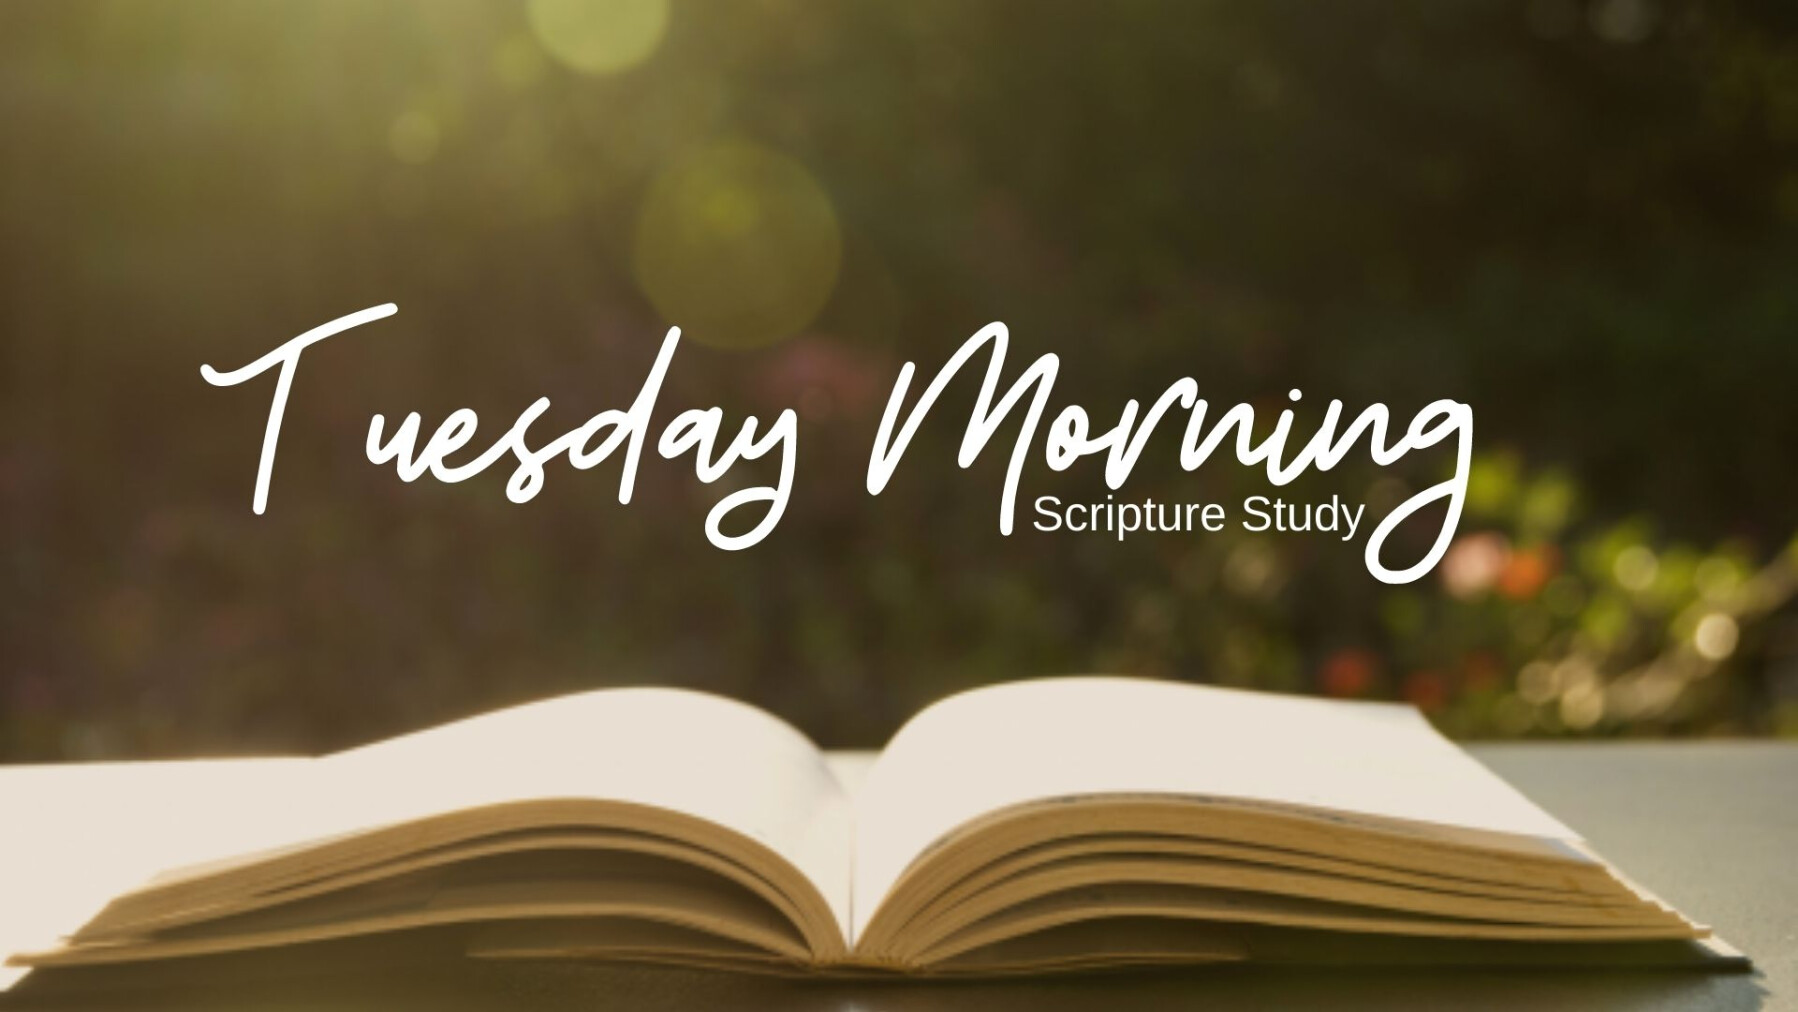 Tuesday Morning Scripture Study